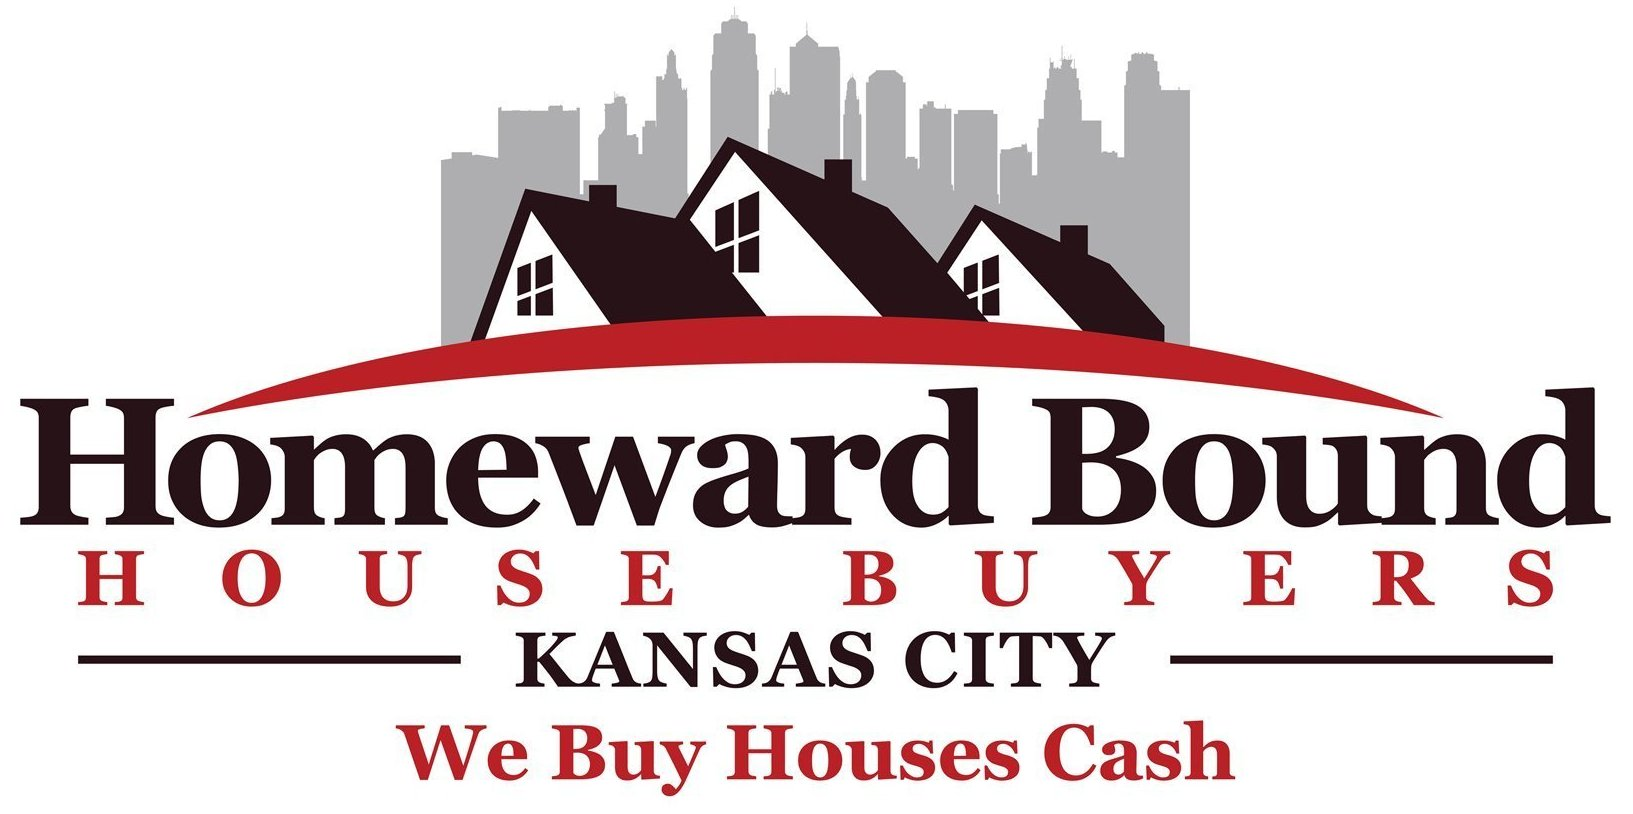 We Buy Houses in Kansas City | Home­ward Bound House Buyers logo